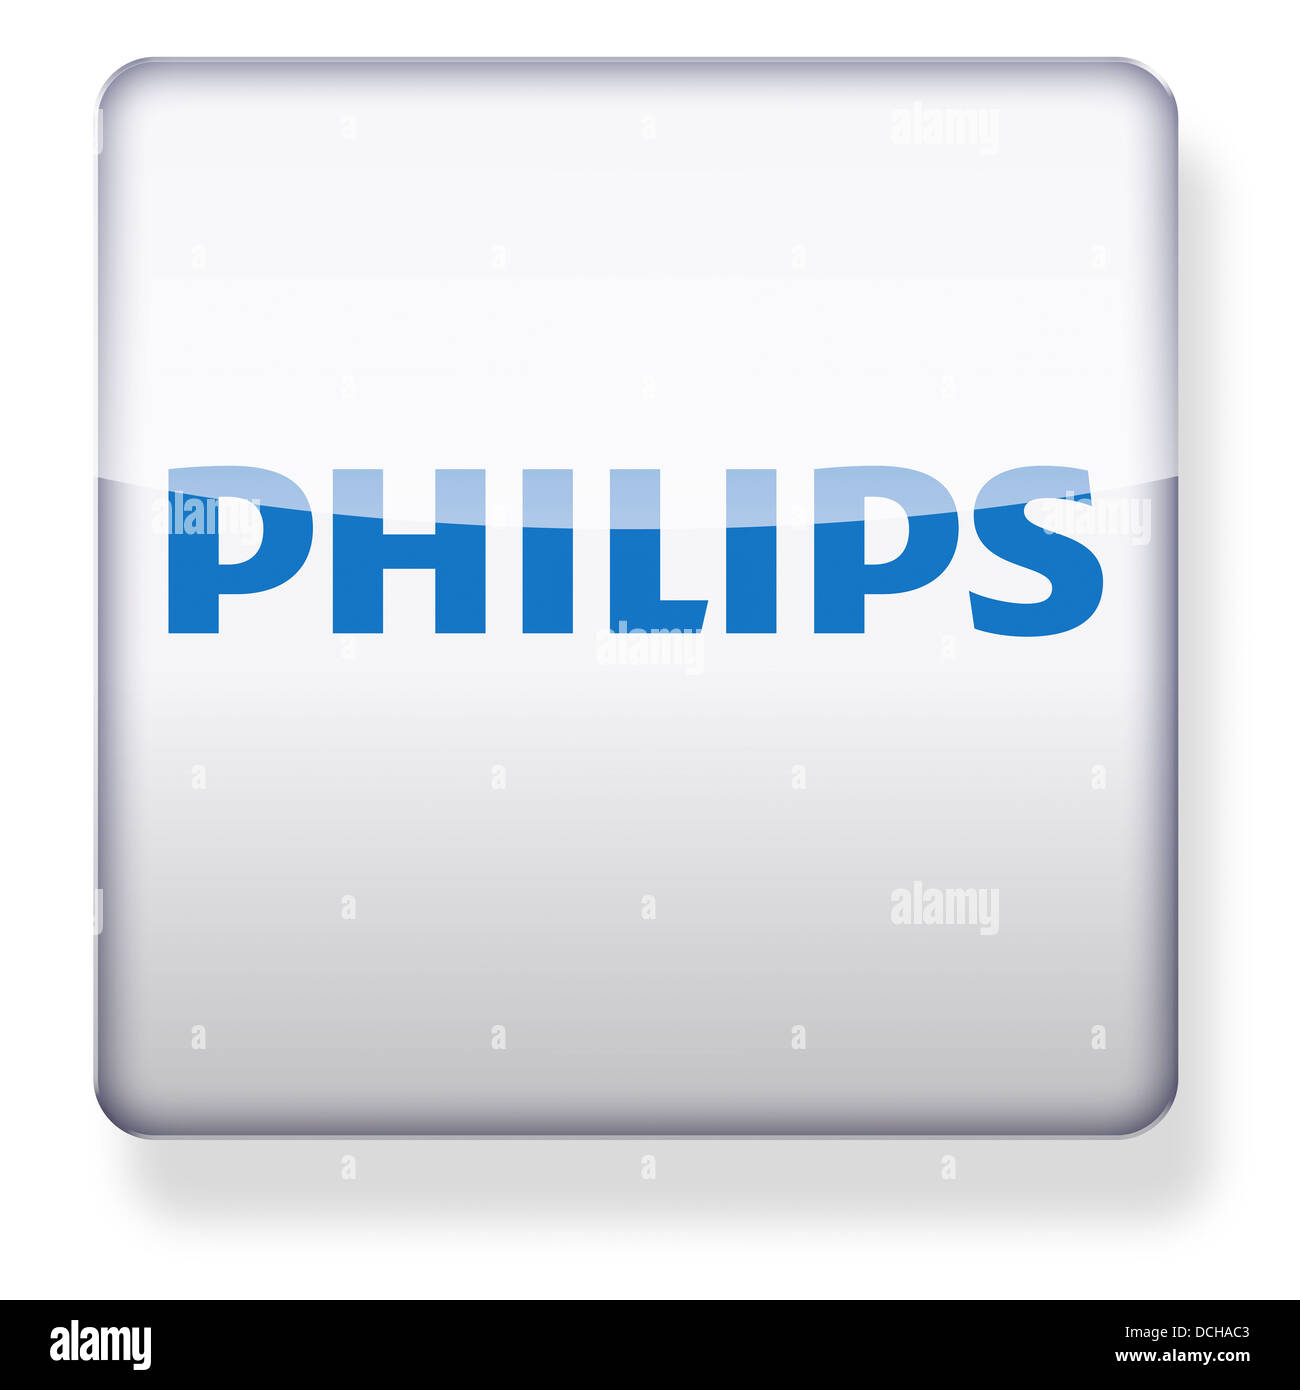 Philips electronics logo as an app icon. Clipping path included. - Stock Image